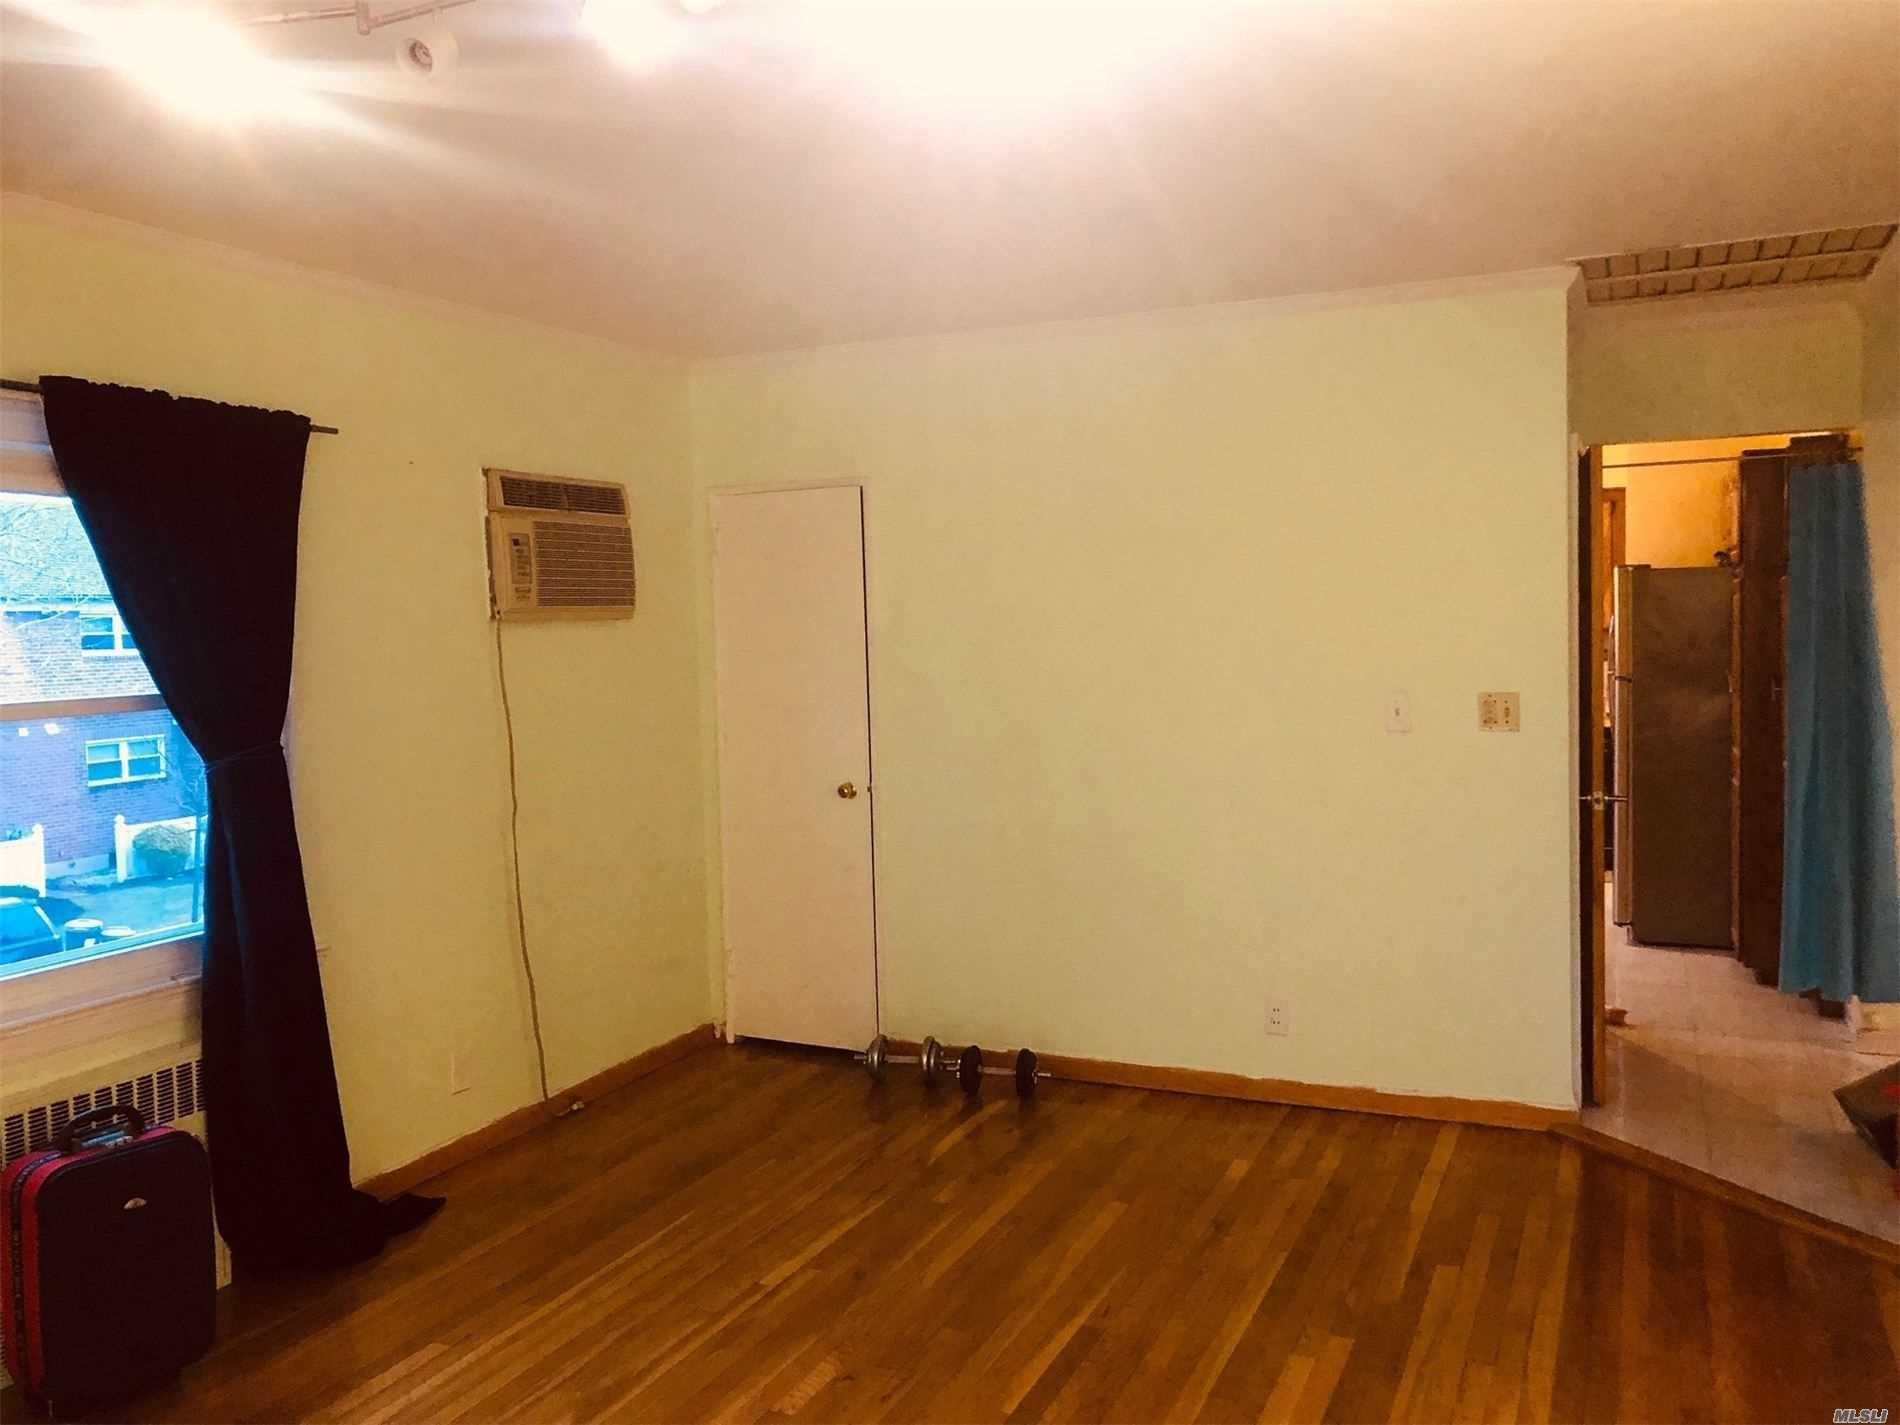 56-30 175 Place #2 FL, Fresh Meadows, NY 11365 - MLS#: 3244260